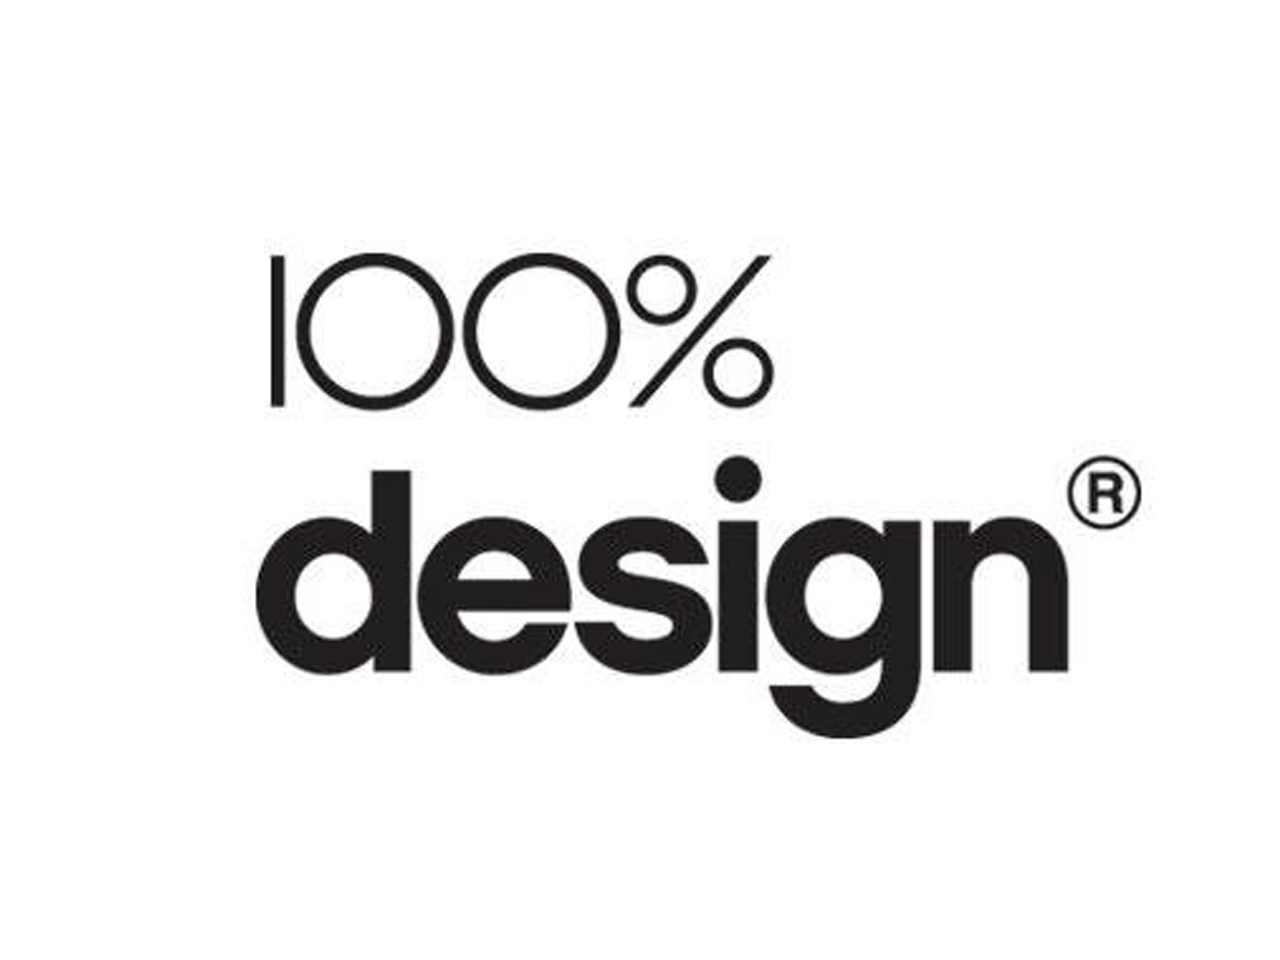 Winy Maas to speak on colour at 100% Design London on September 25th